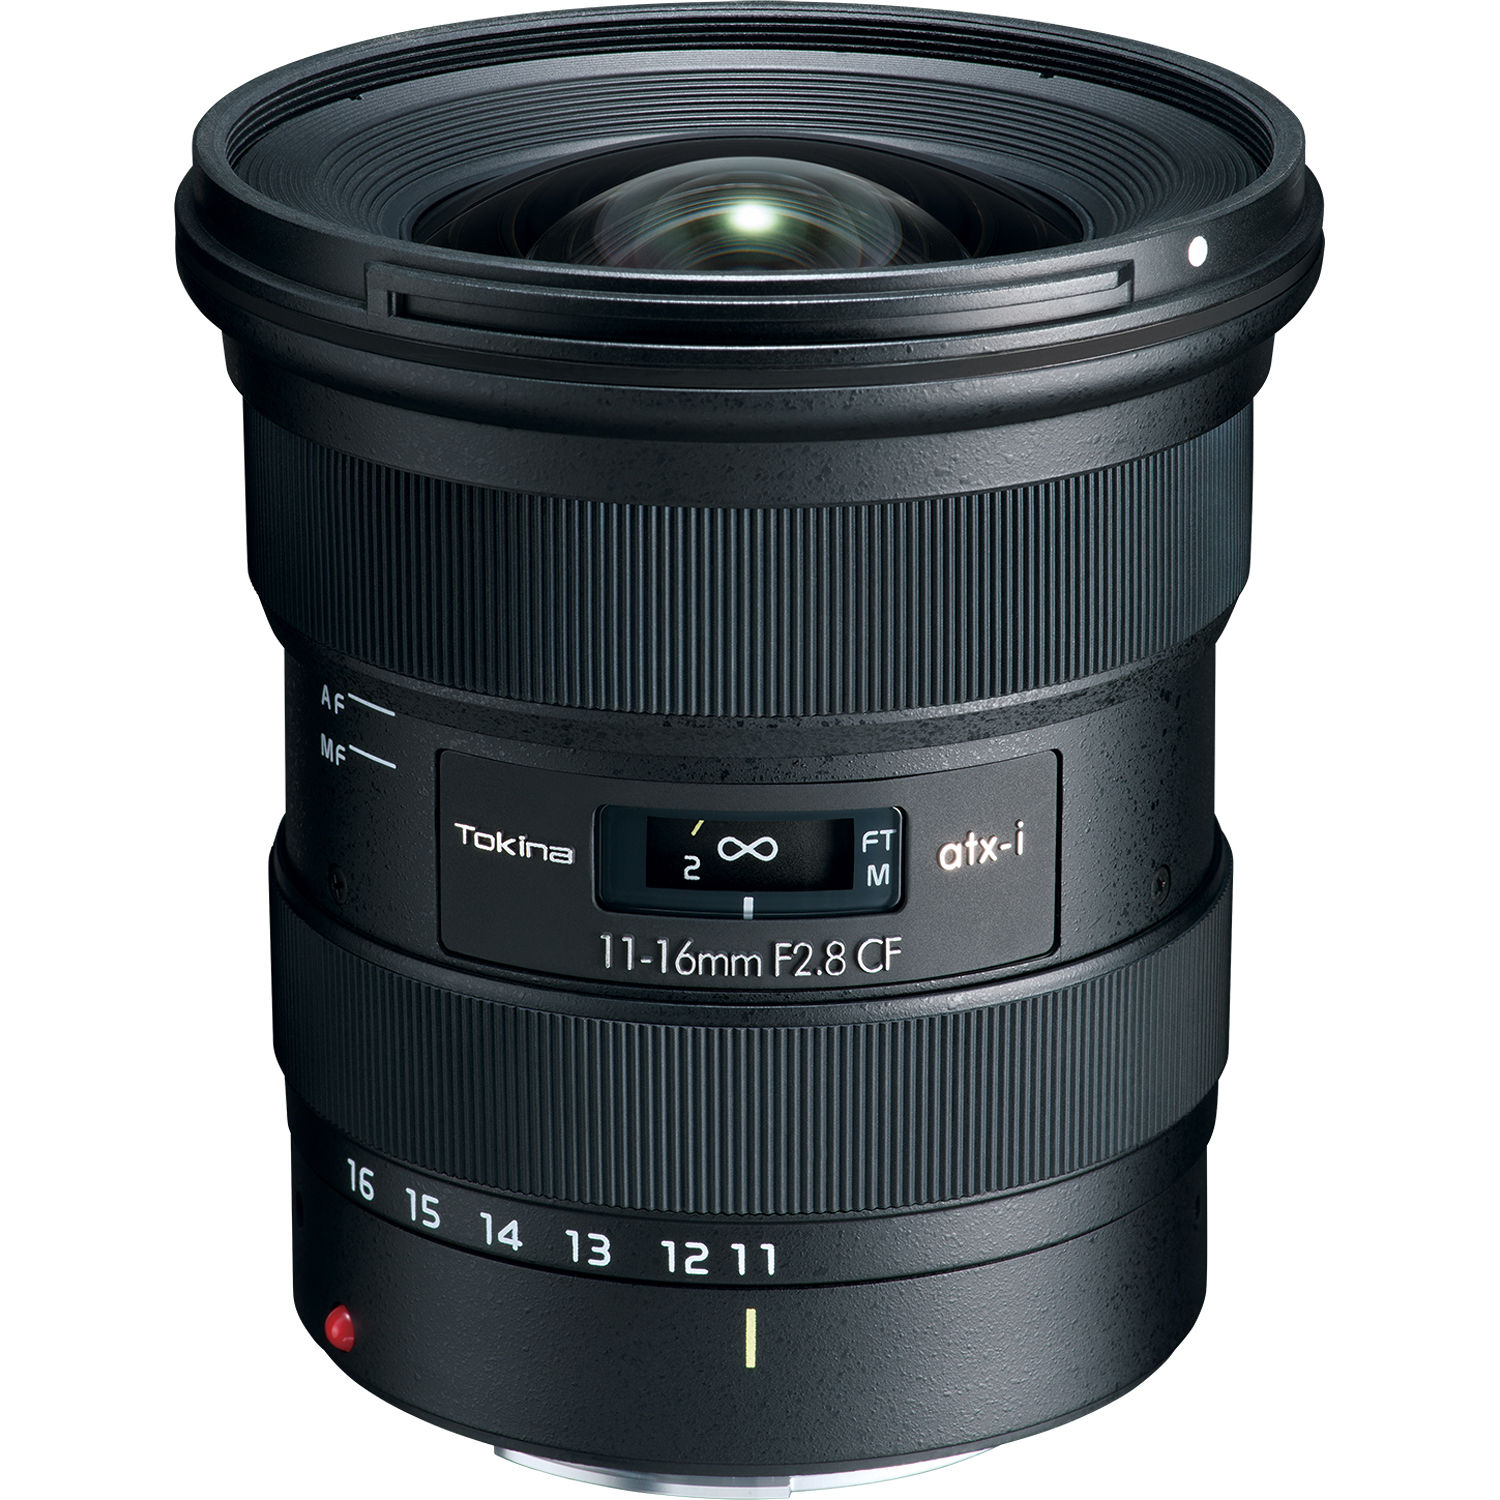 Image of Tokina ATX-i 11-16mm f/2.8 CF Lens for Canon EF Mount